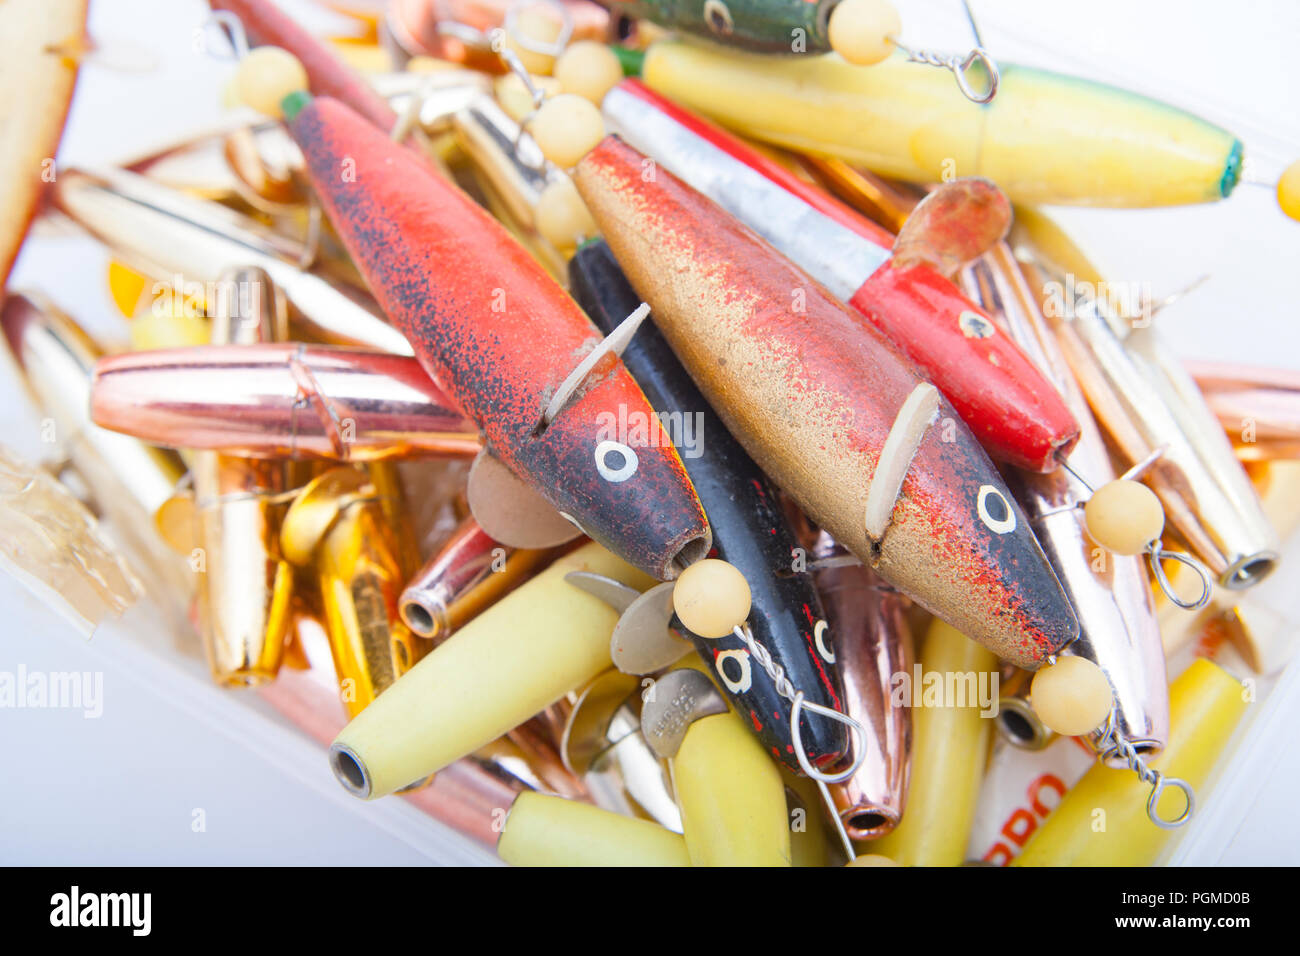 A collection of painted and unpainted Devon minnow fishing